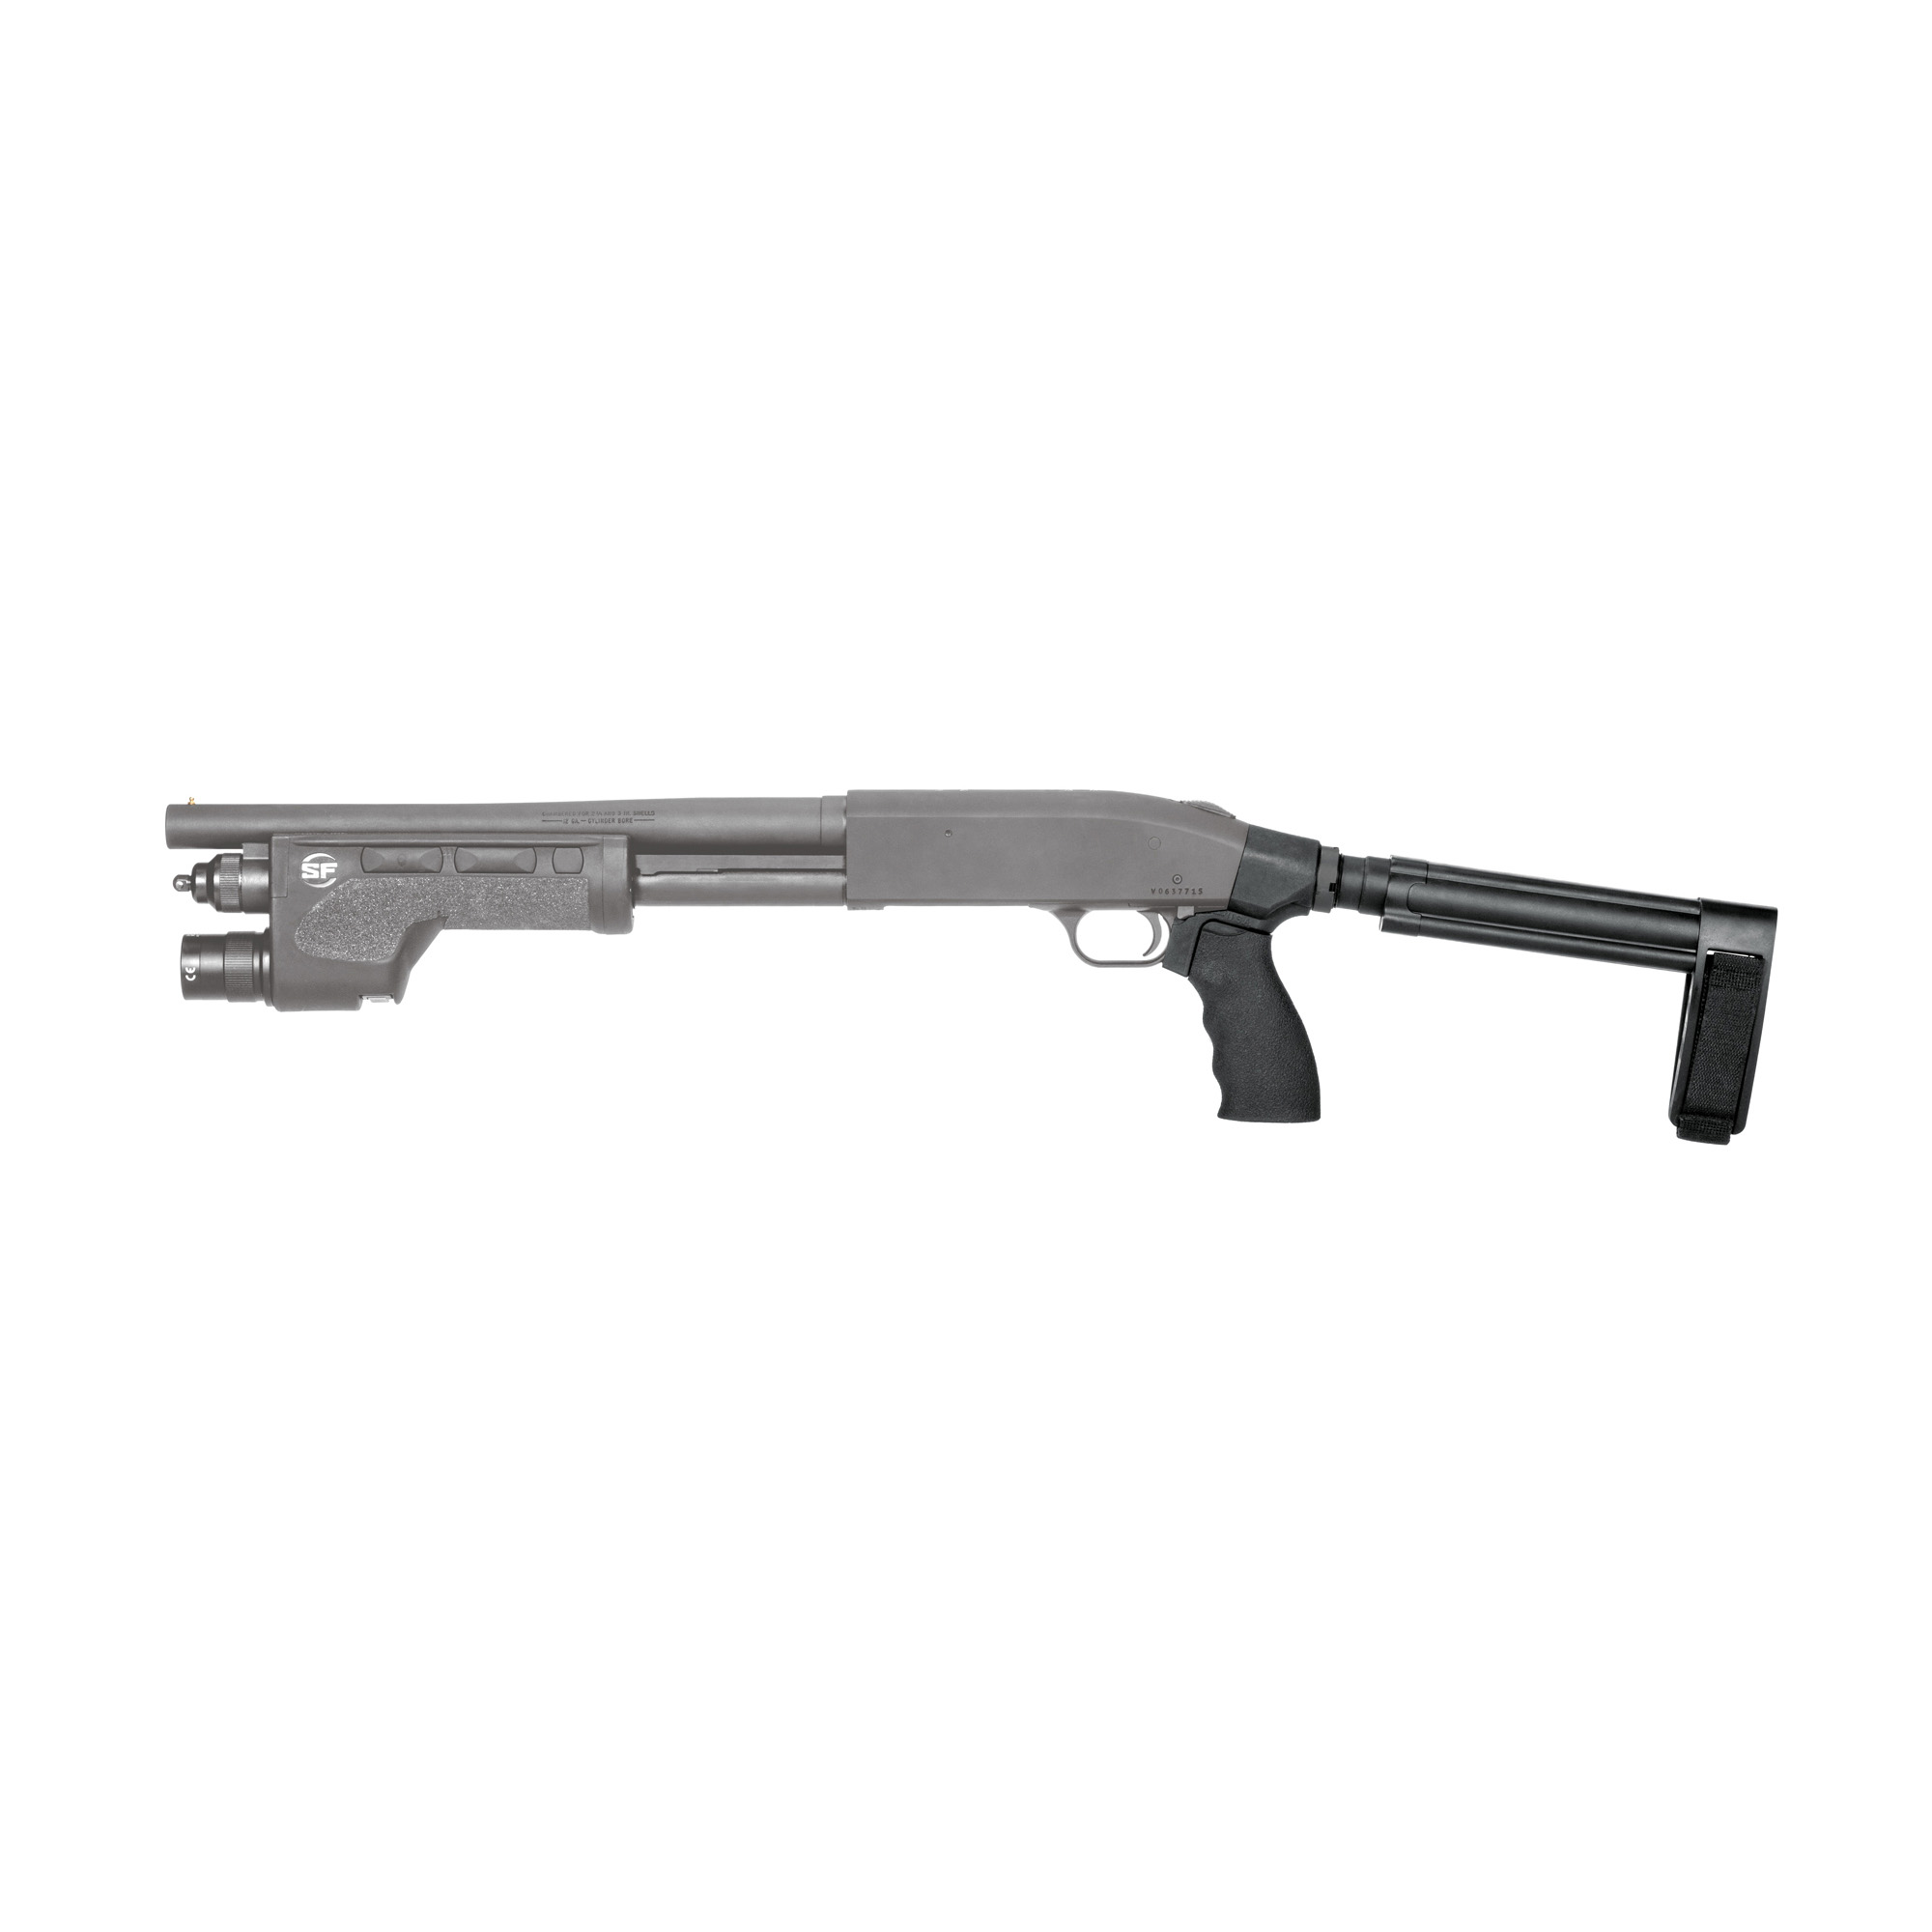 """This SB Tactical Stabilizing Brace Kit for the Mossberg 590 is ready to assemble on your Mossberg 590 Shockwave. It will greatly enhance the usability of the firearm by adding a third point of contact for stabilization. Kit includes SBL pistol stabilizing brace"""" STDT pistol receiver extension; ERGO flat top Suregrip"""" ERGO Mossberg 590 adapter"""" castle nut and adjustable nylon strap."""